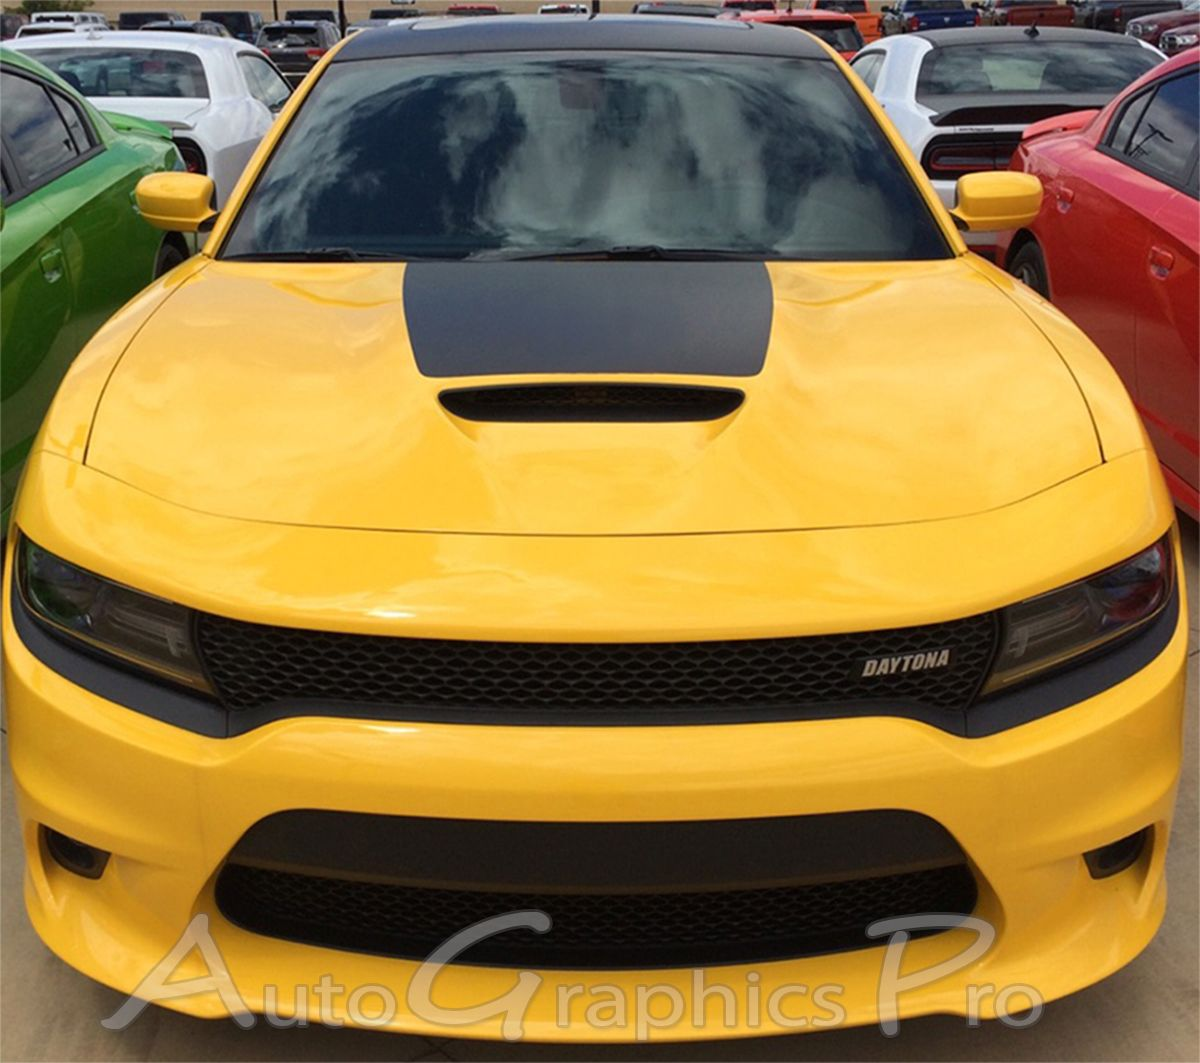 Vinyl graphic stripes decals kits vehicle specific accent striping decal packages autographicspro fast install car